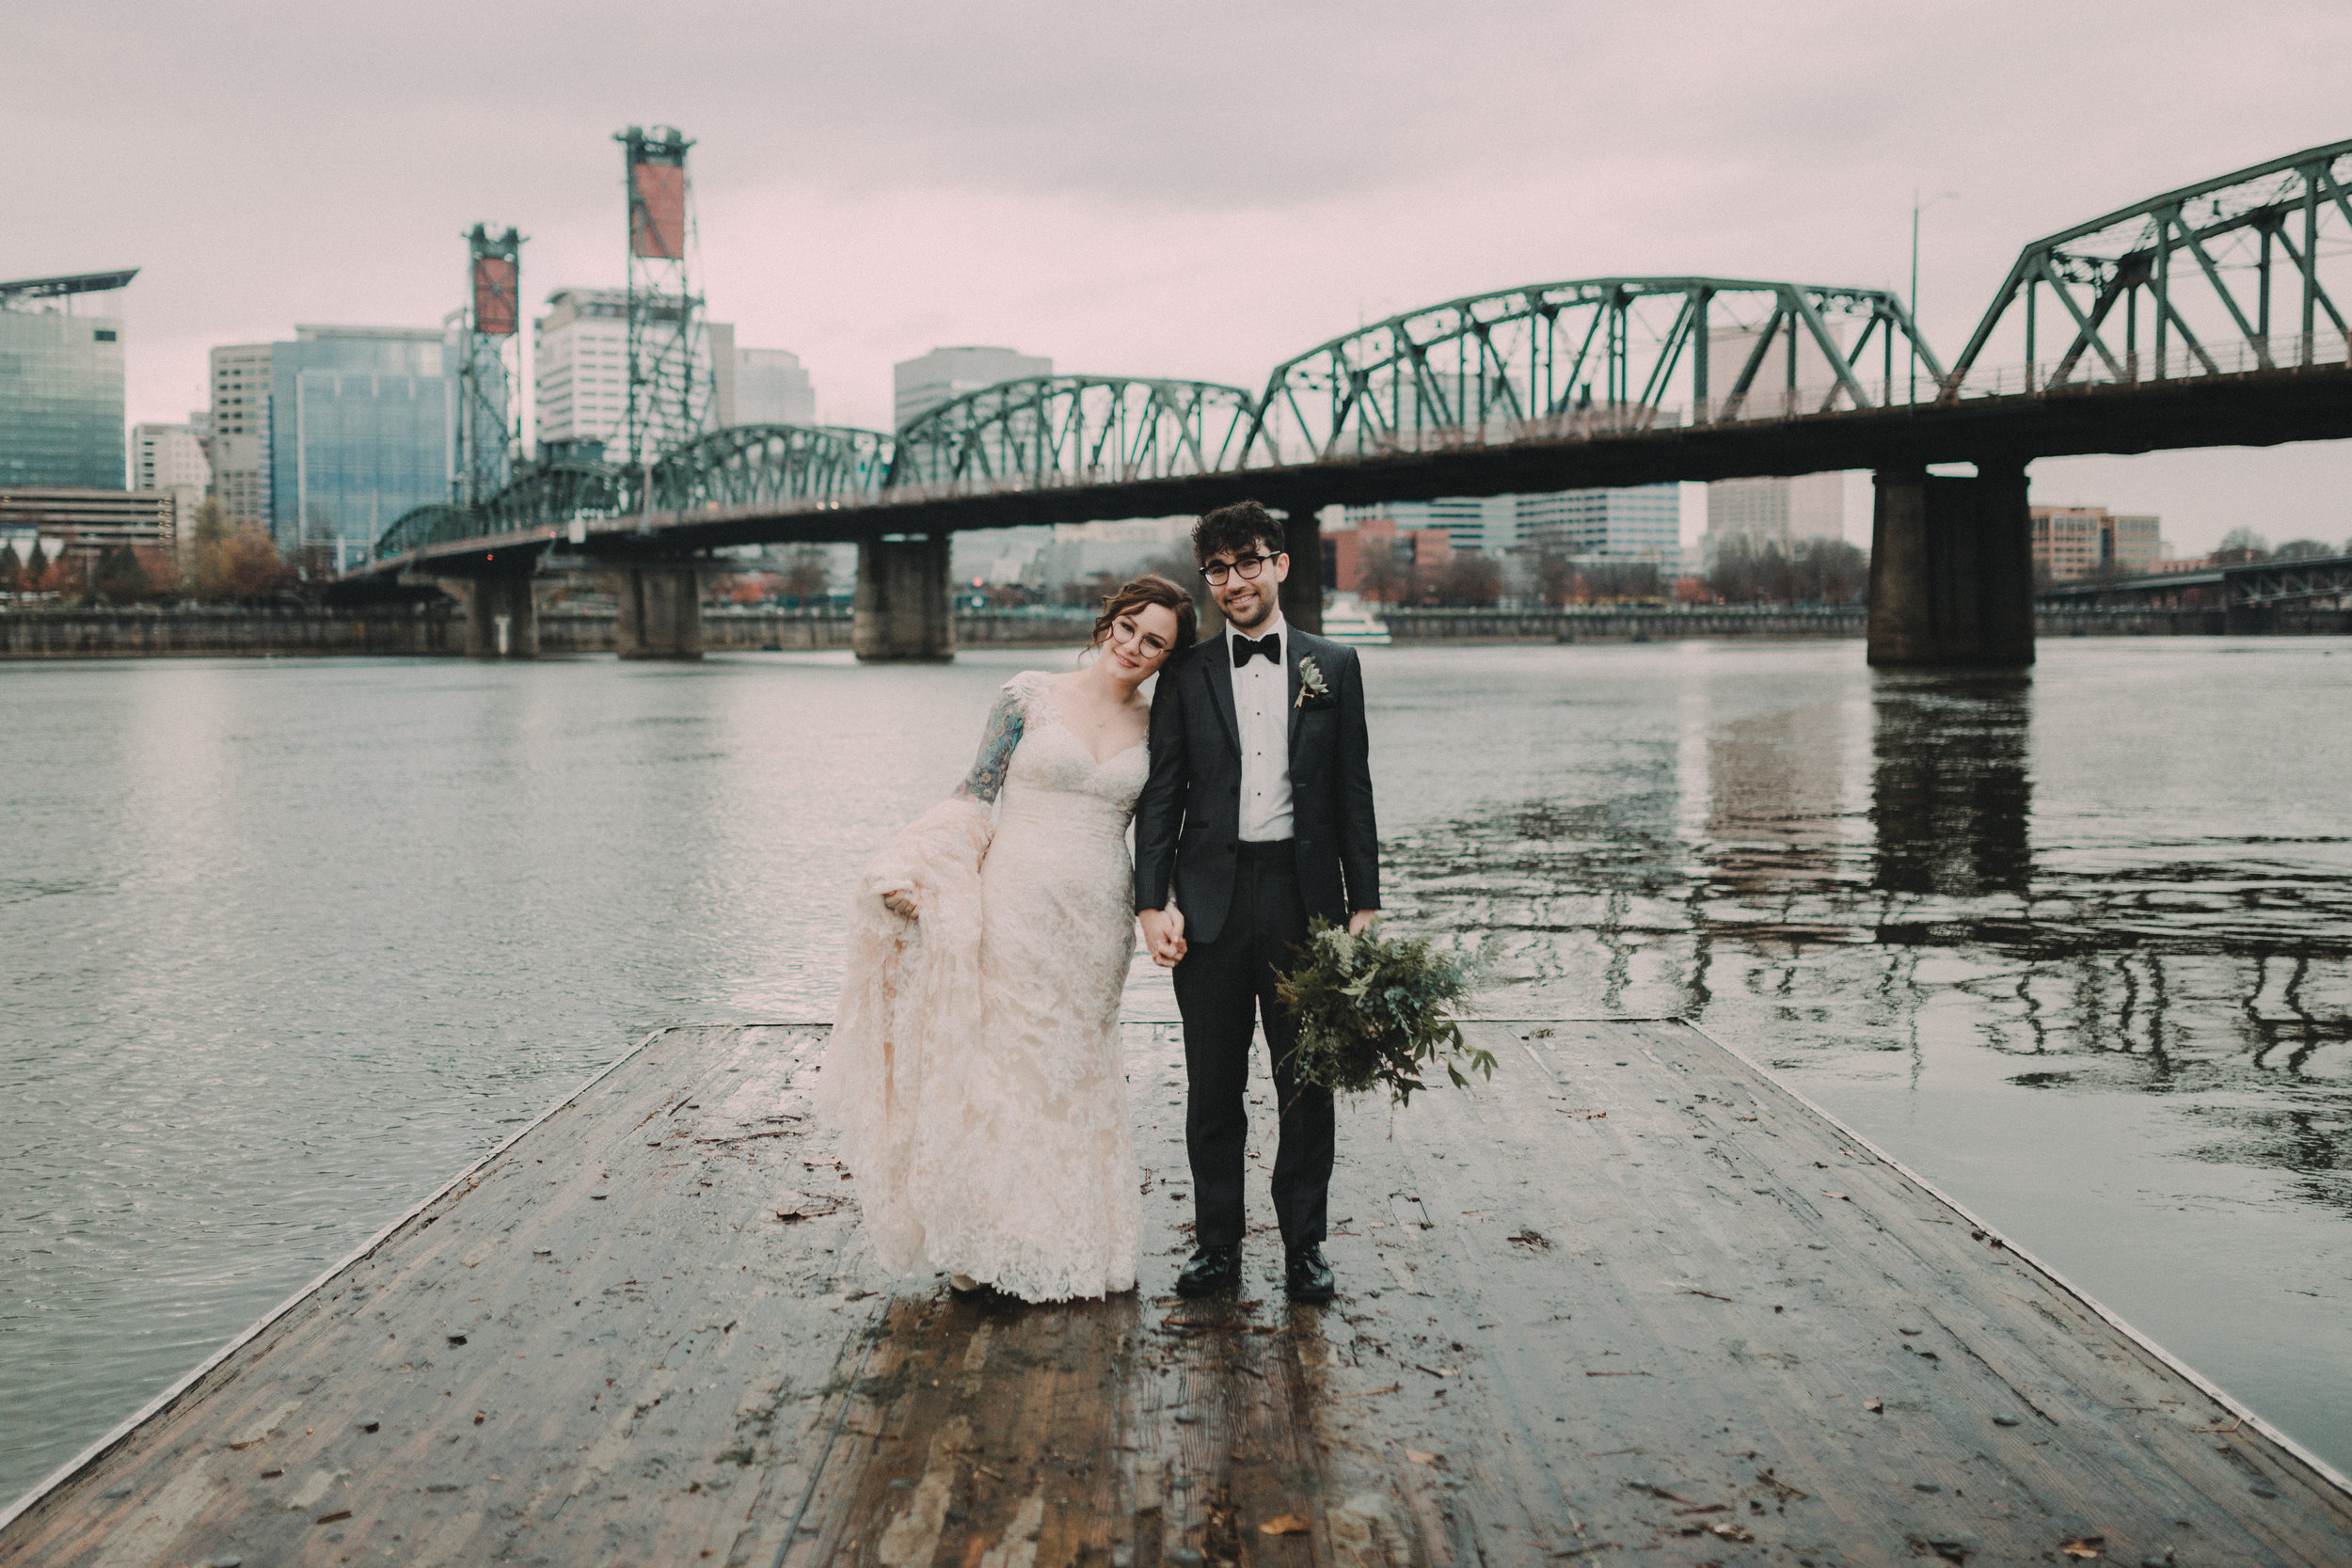 Bridalbliss.com | Portland Wedding | Oregon Event Planning and Design | Christy Cassano-Meyer Photography